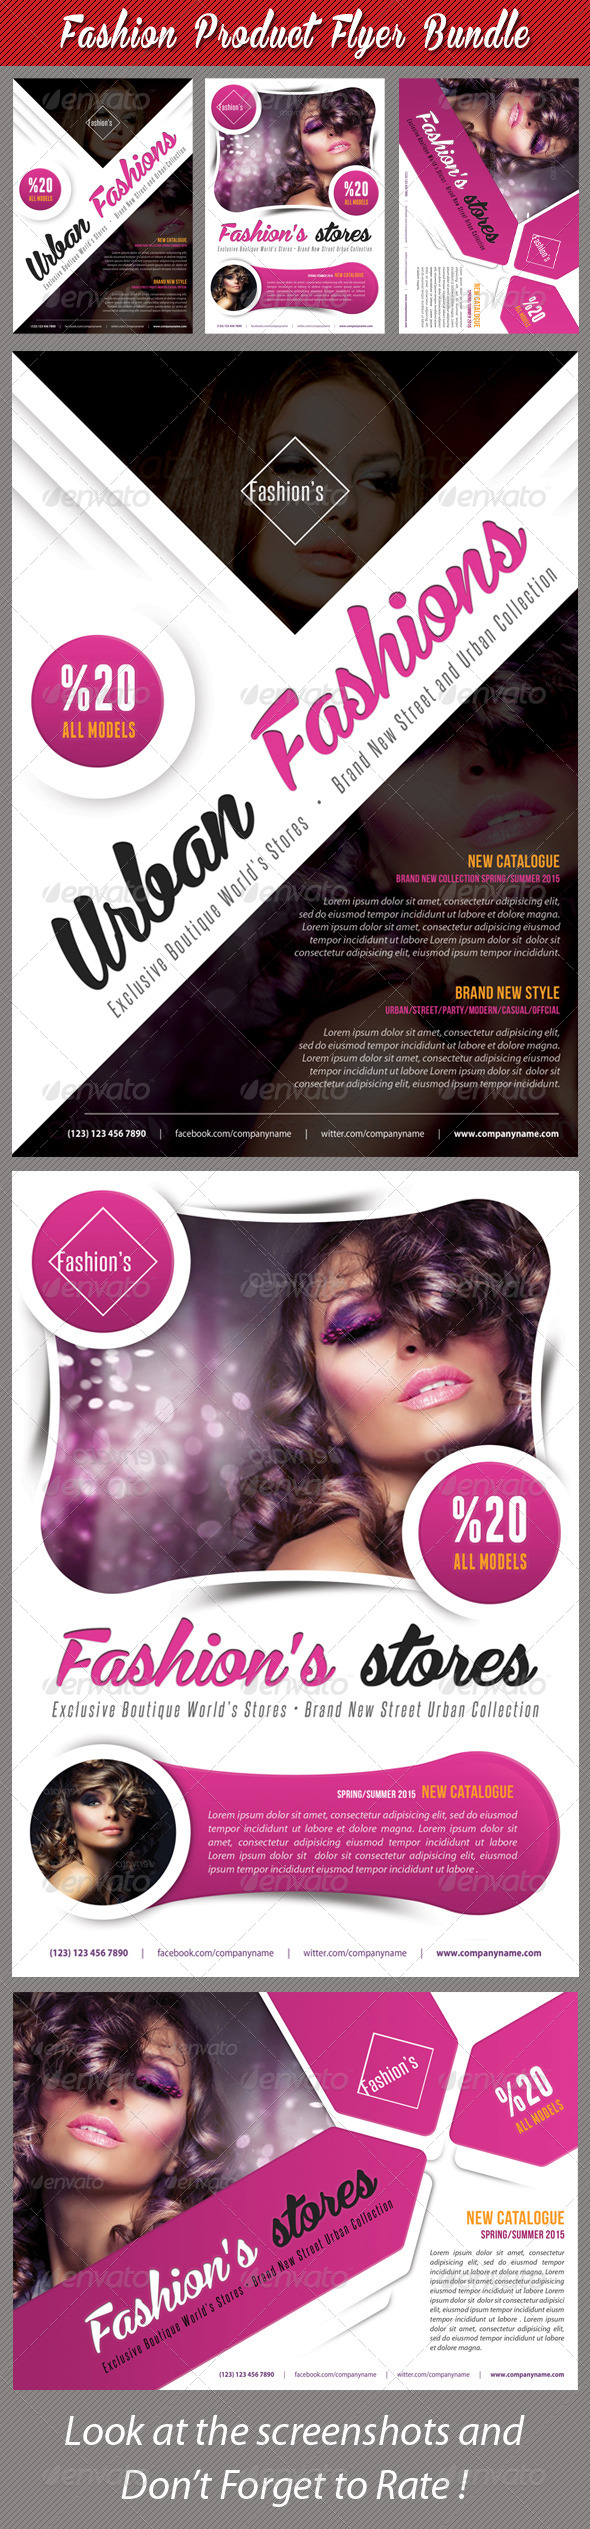 GraphicRiver 3 in 1 Fashion Product Flyer Bundle 19 7638826